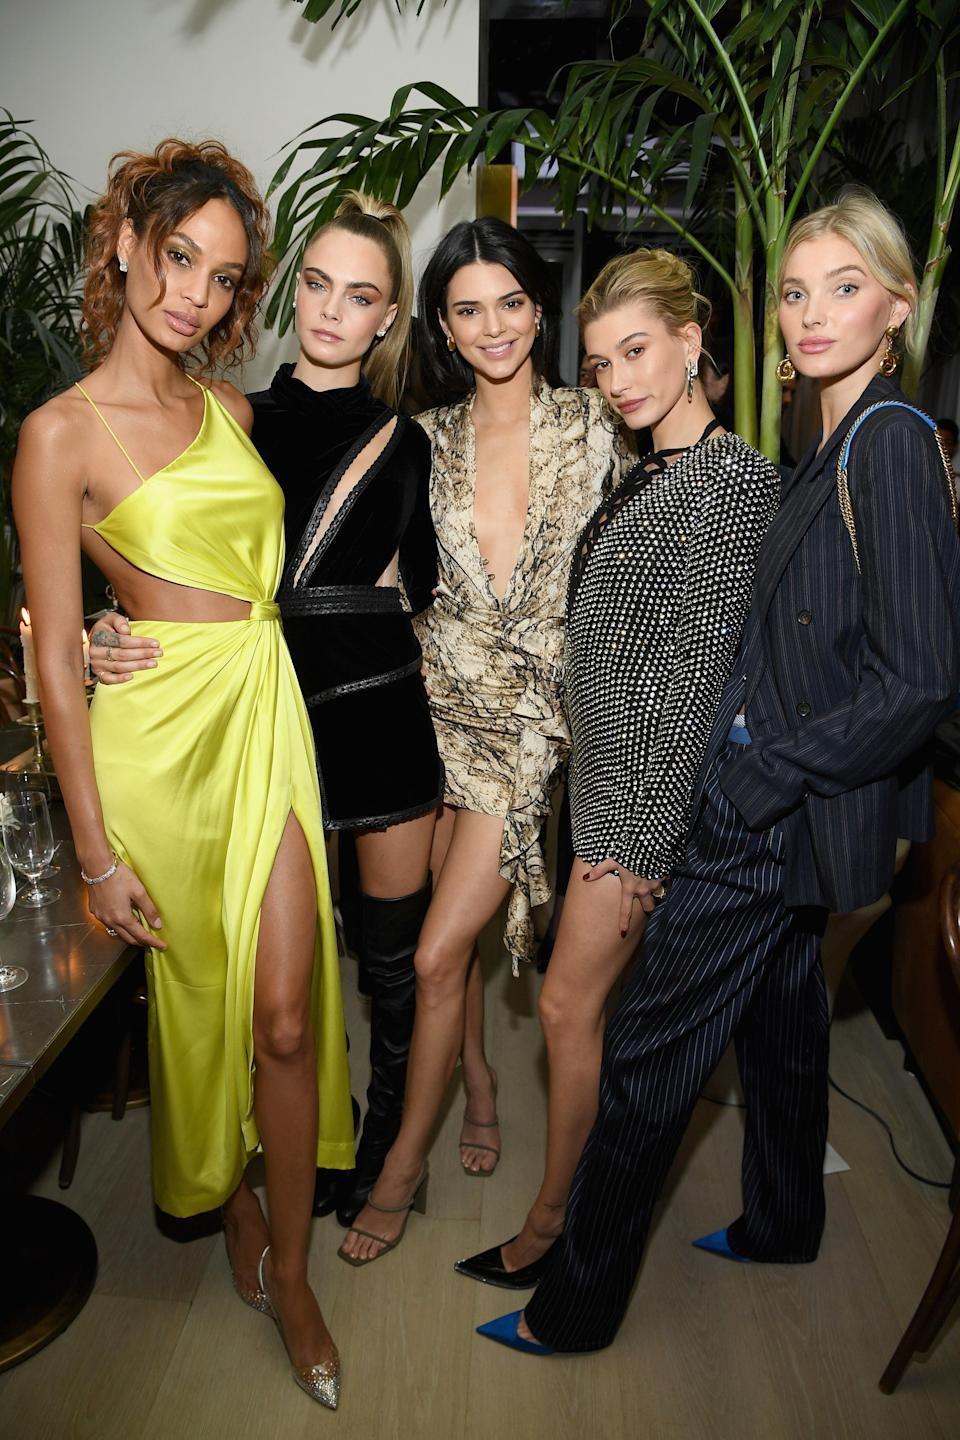 <p>The five models each put their best fashion foot forward in an array of sartorially-savvy ensembles at The Times Square Edition premiere. <em>[Photo: Getty]</em> </p>